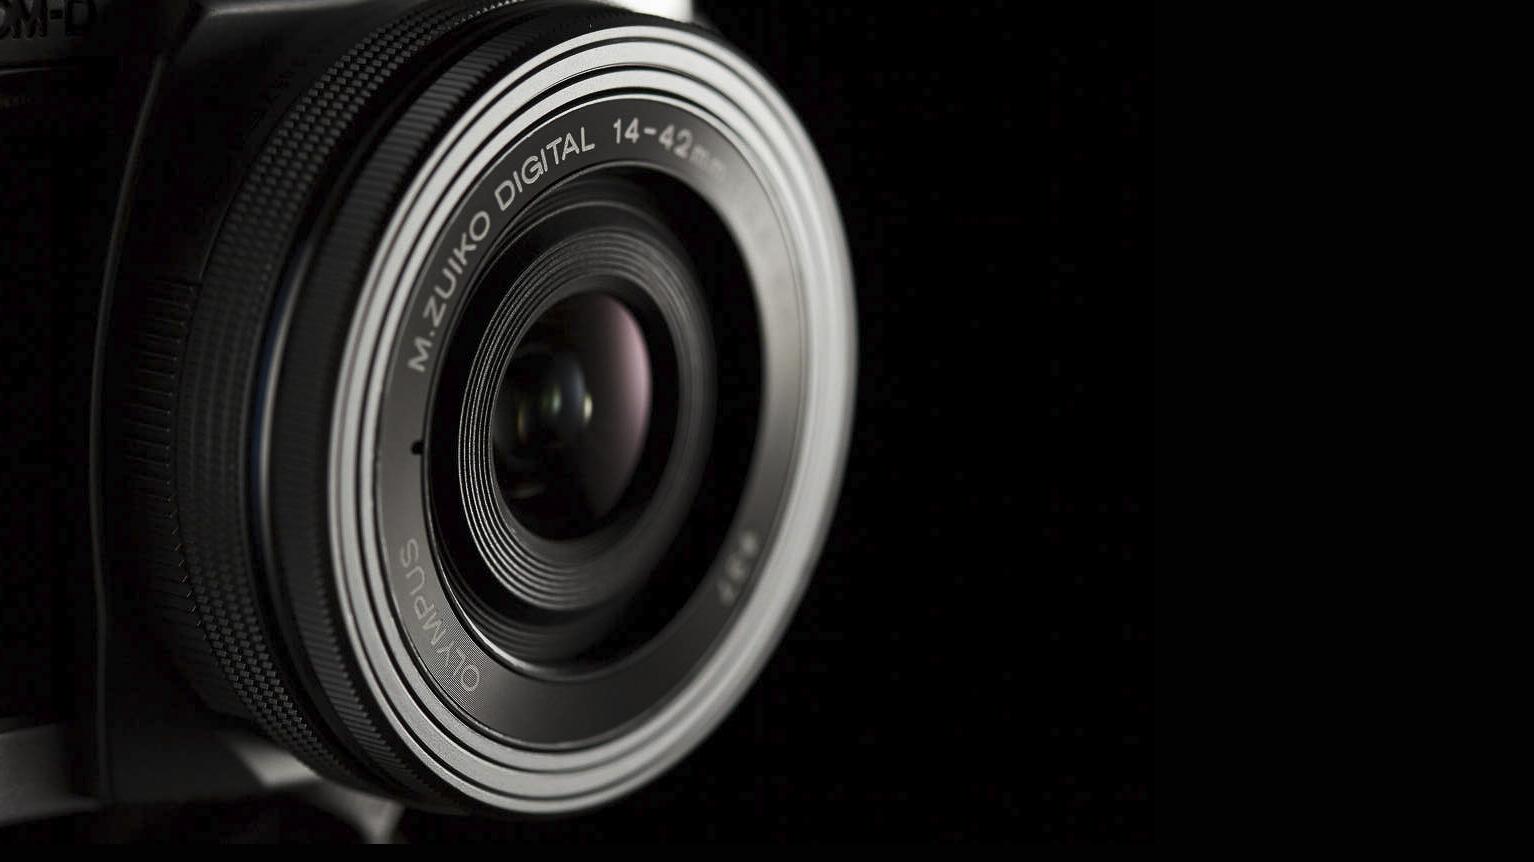 What is a pancake lens and why would you want one?